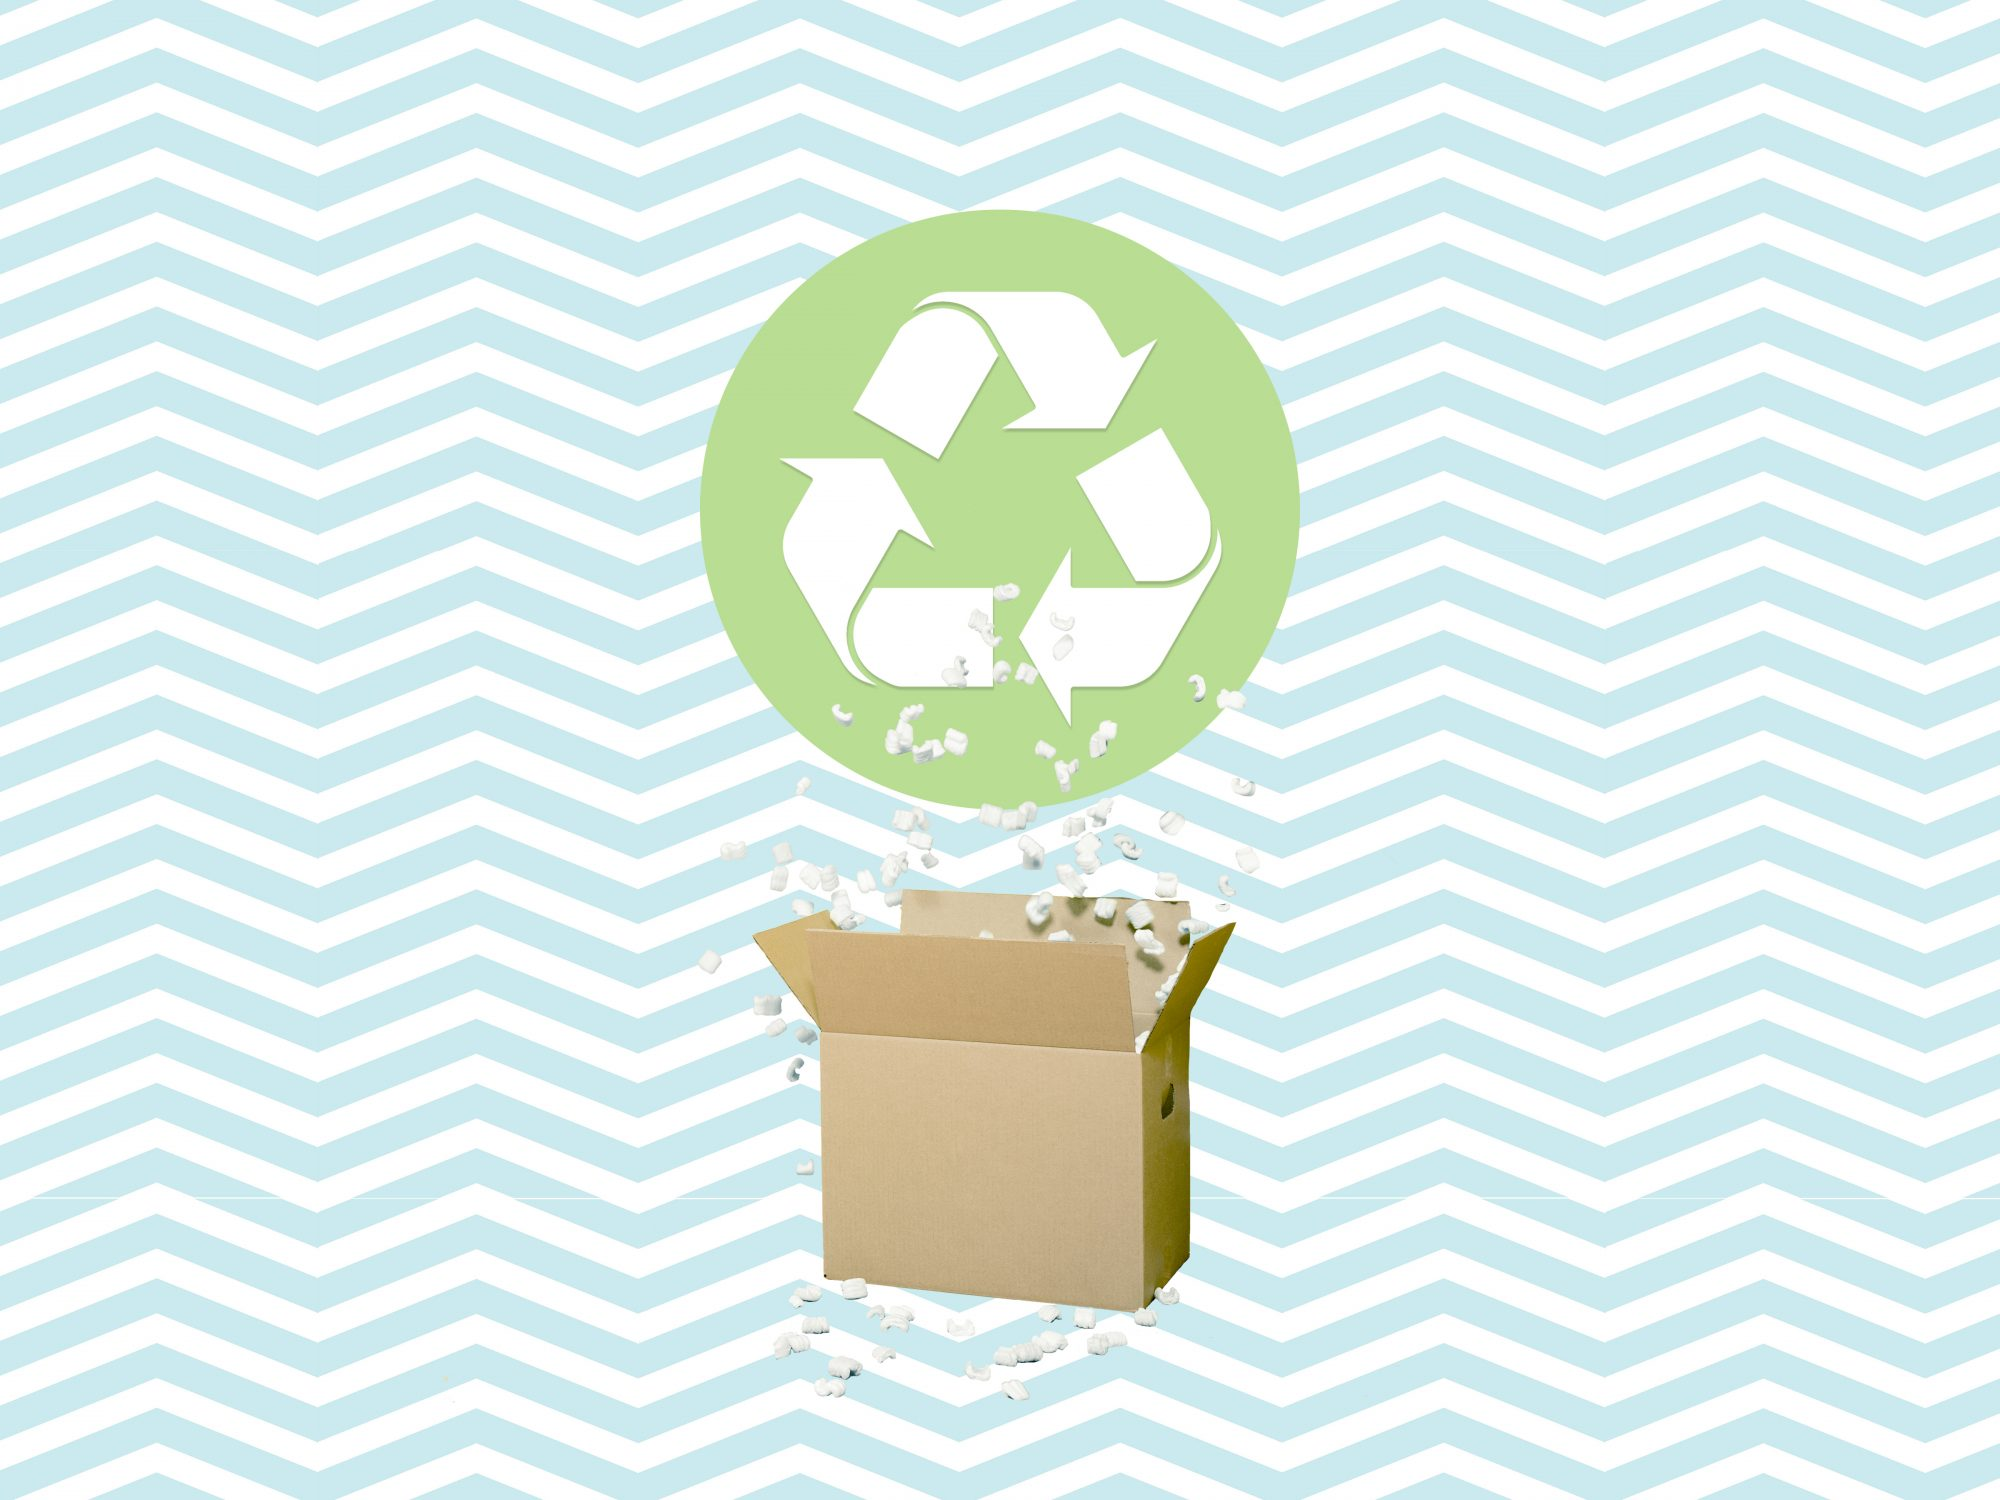 online retailer packaging and recycling tips